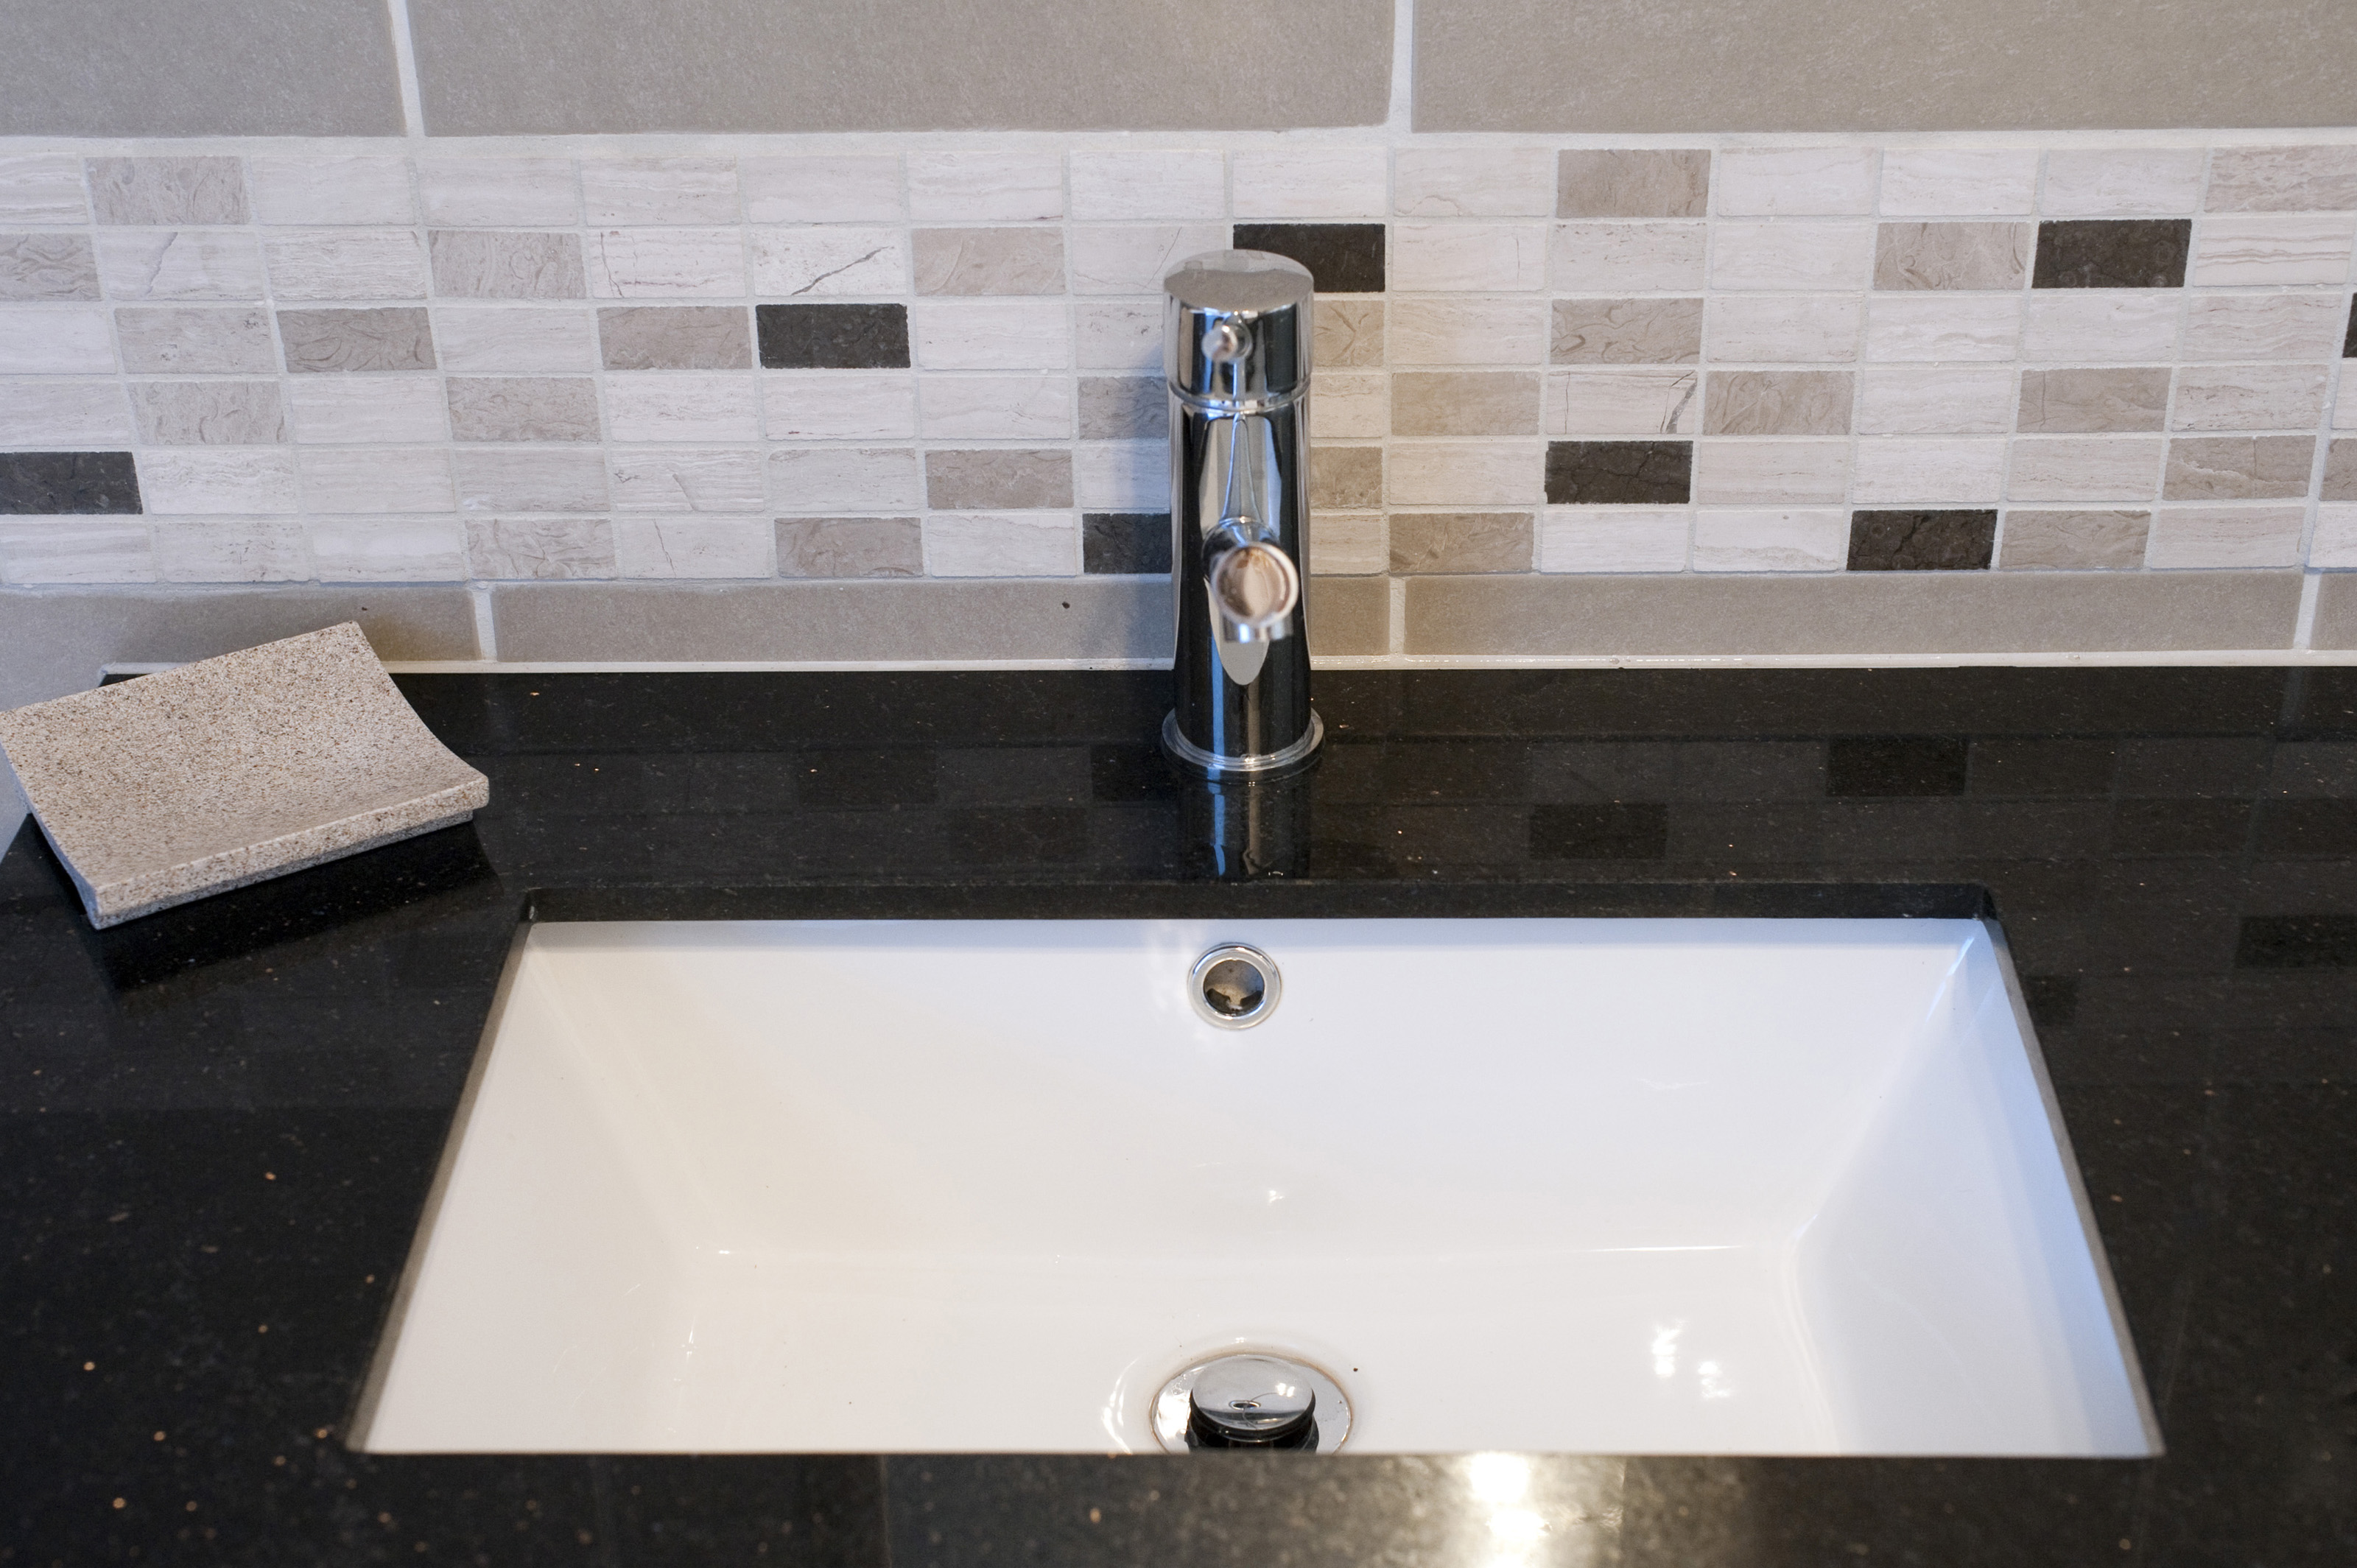 sinks white bathroom sink square special debuskphoto type